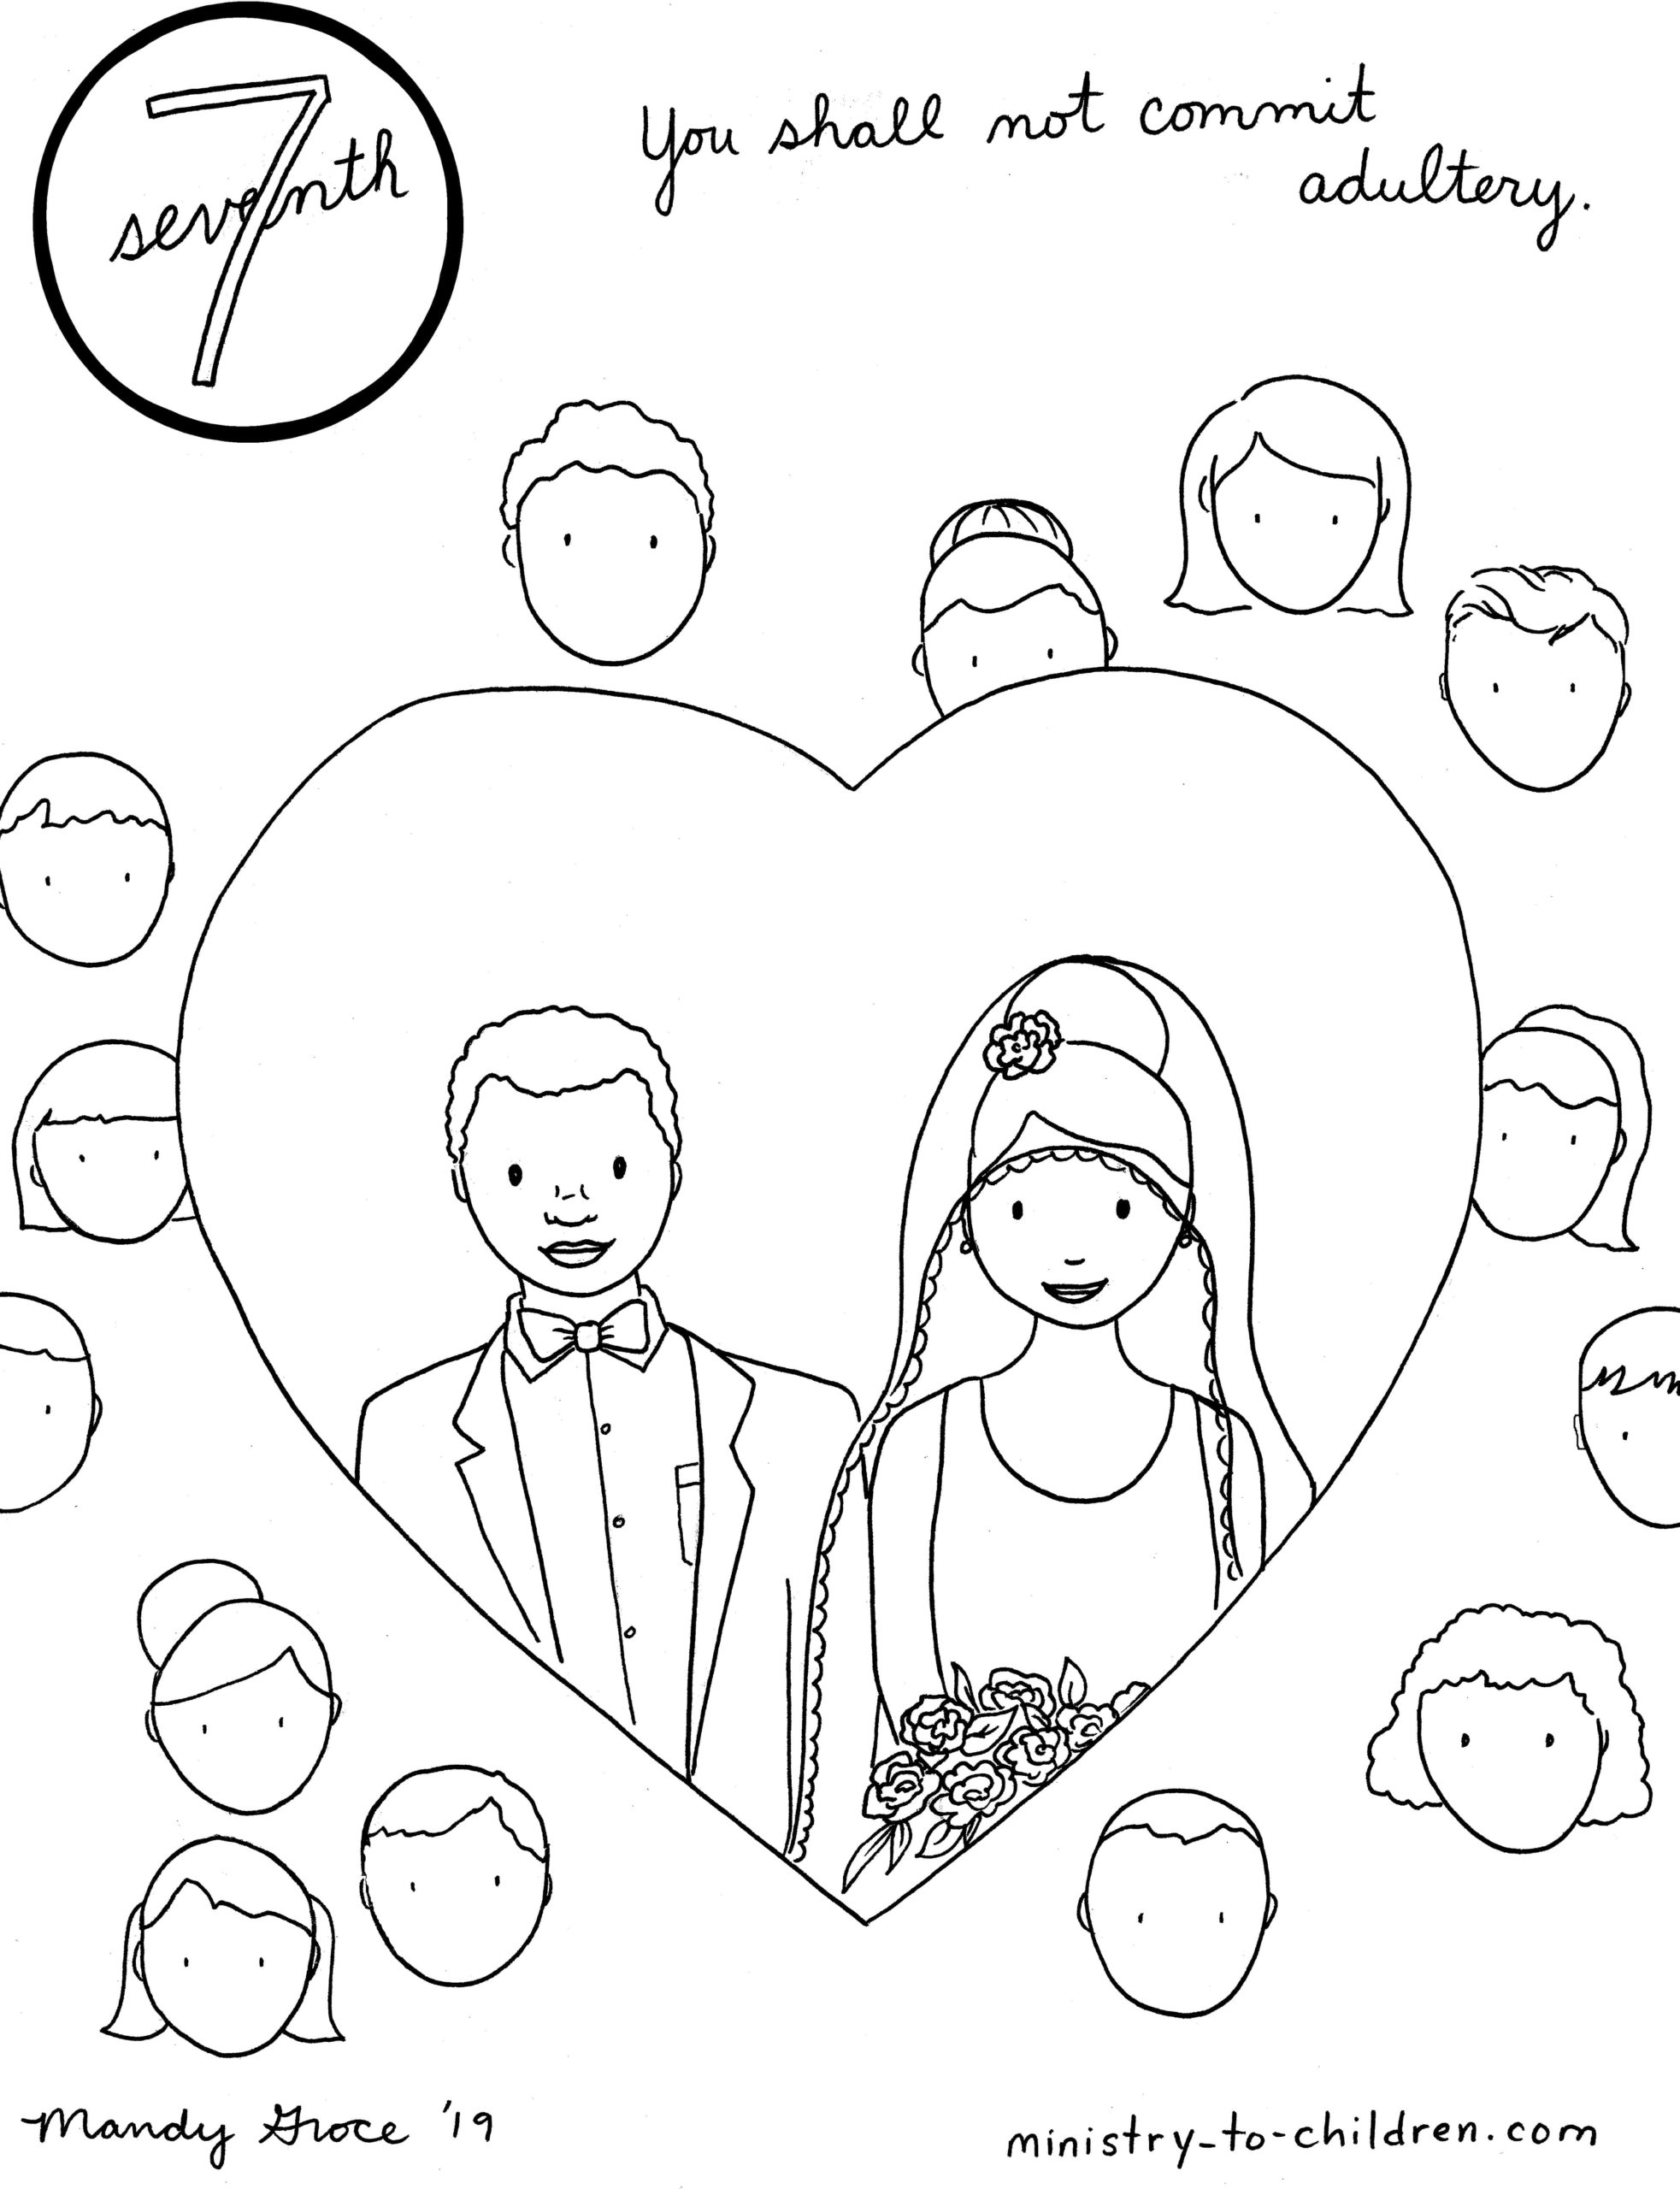 1 John 1:9 Bible Verse Coloring Page – Children's Ministry Deals | 2560x1965